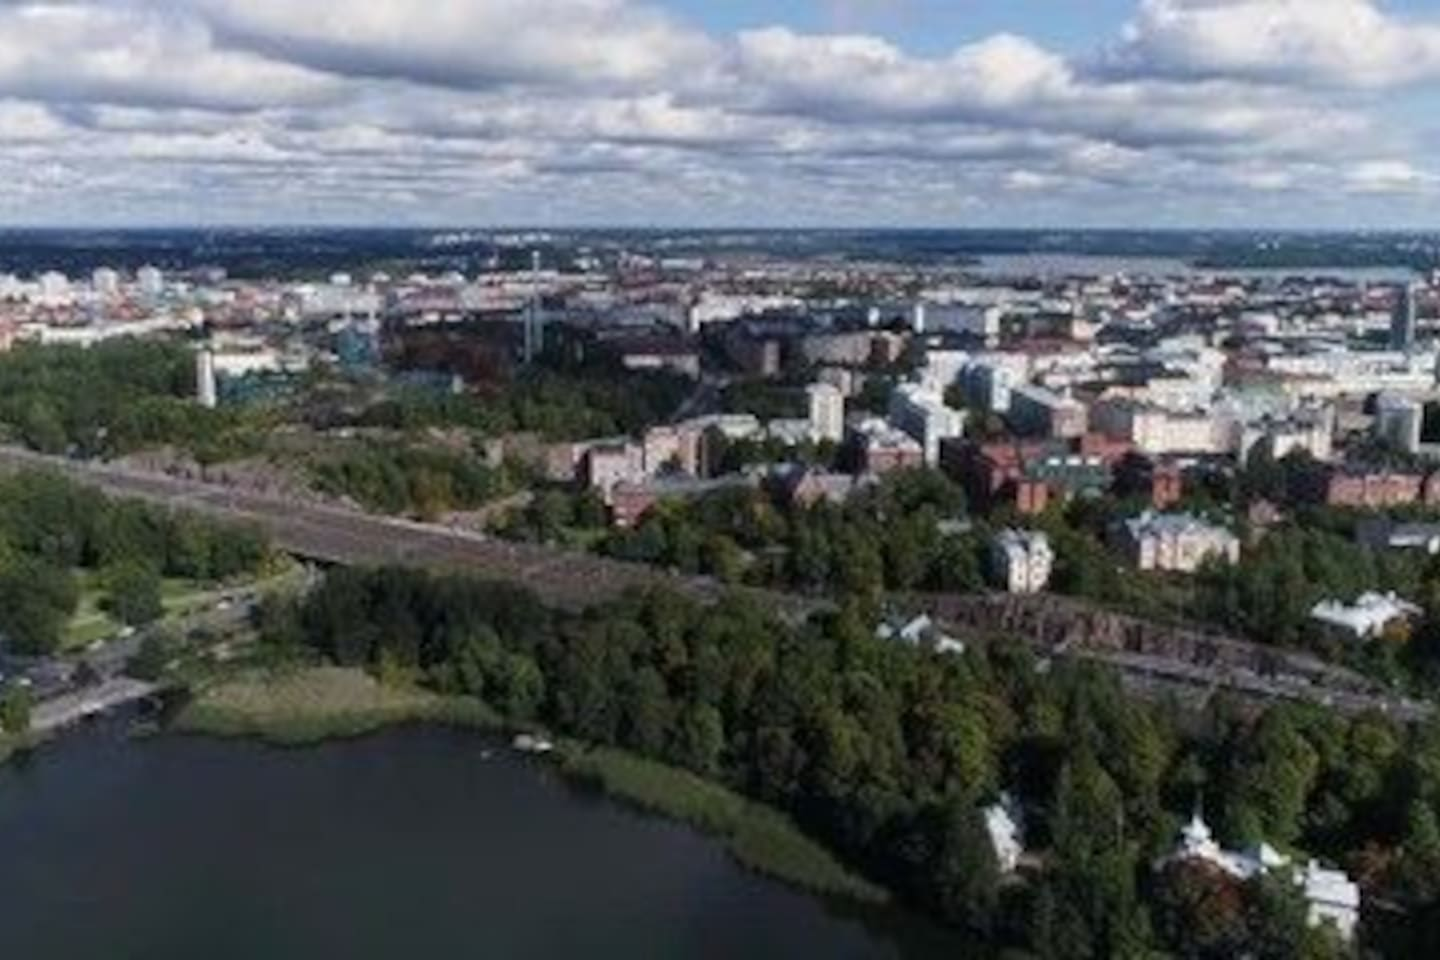 Lovely pasila city and nature.